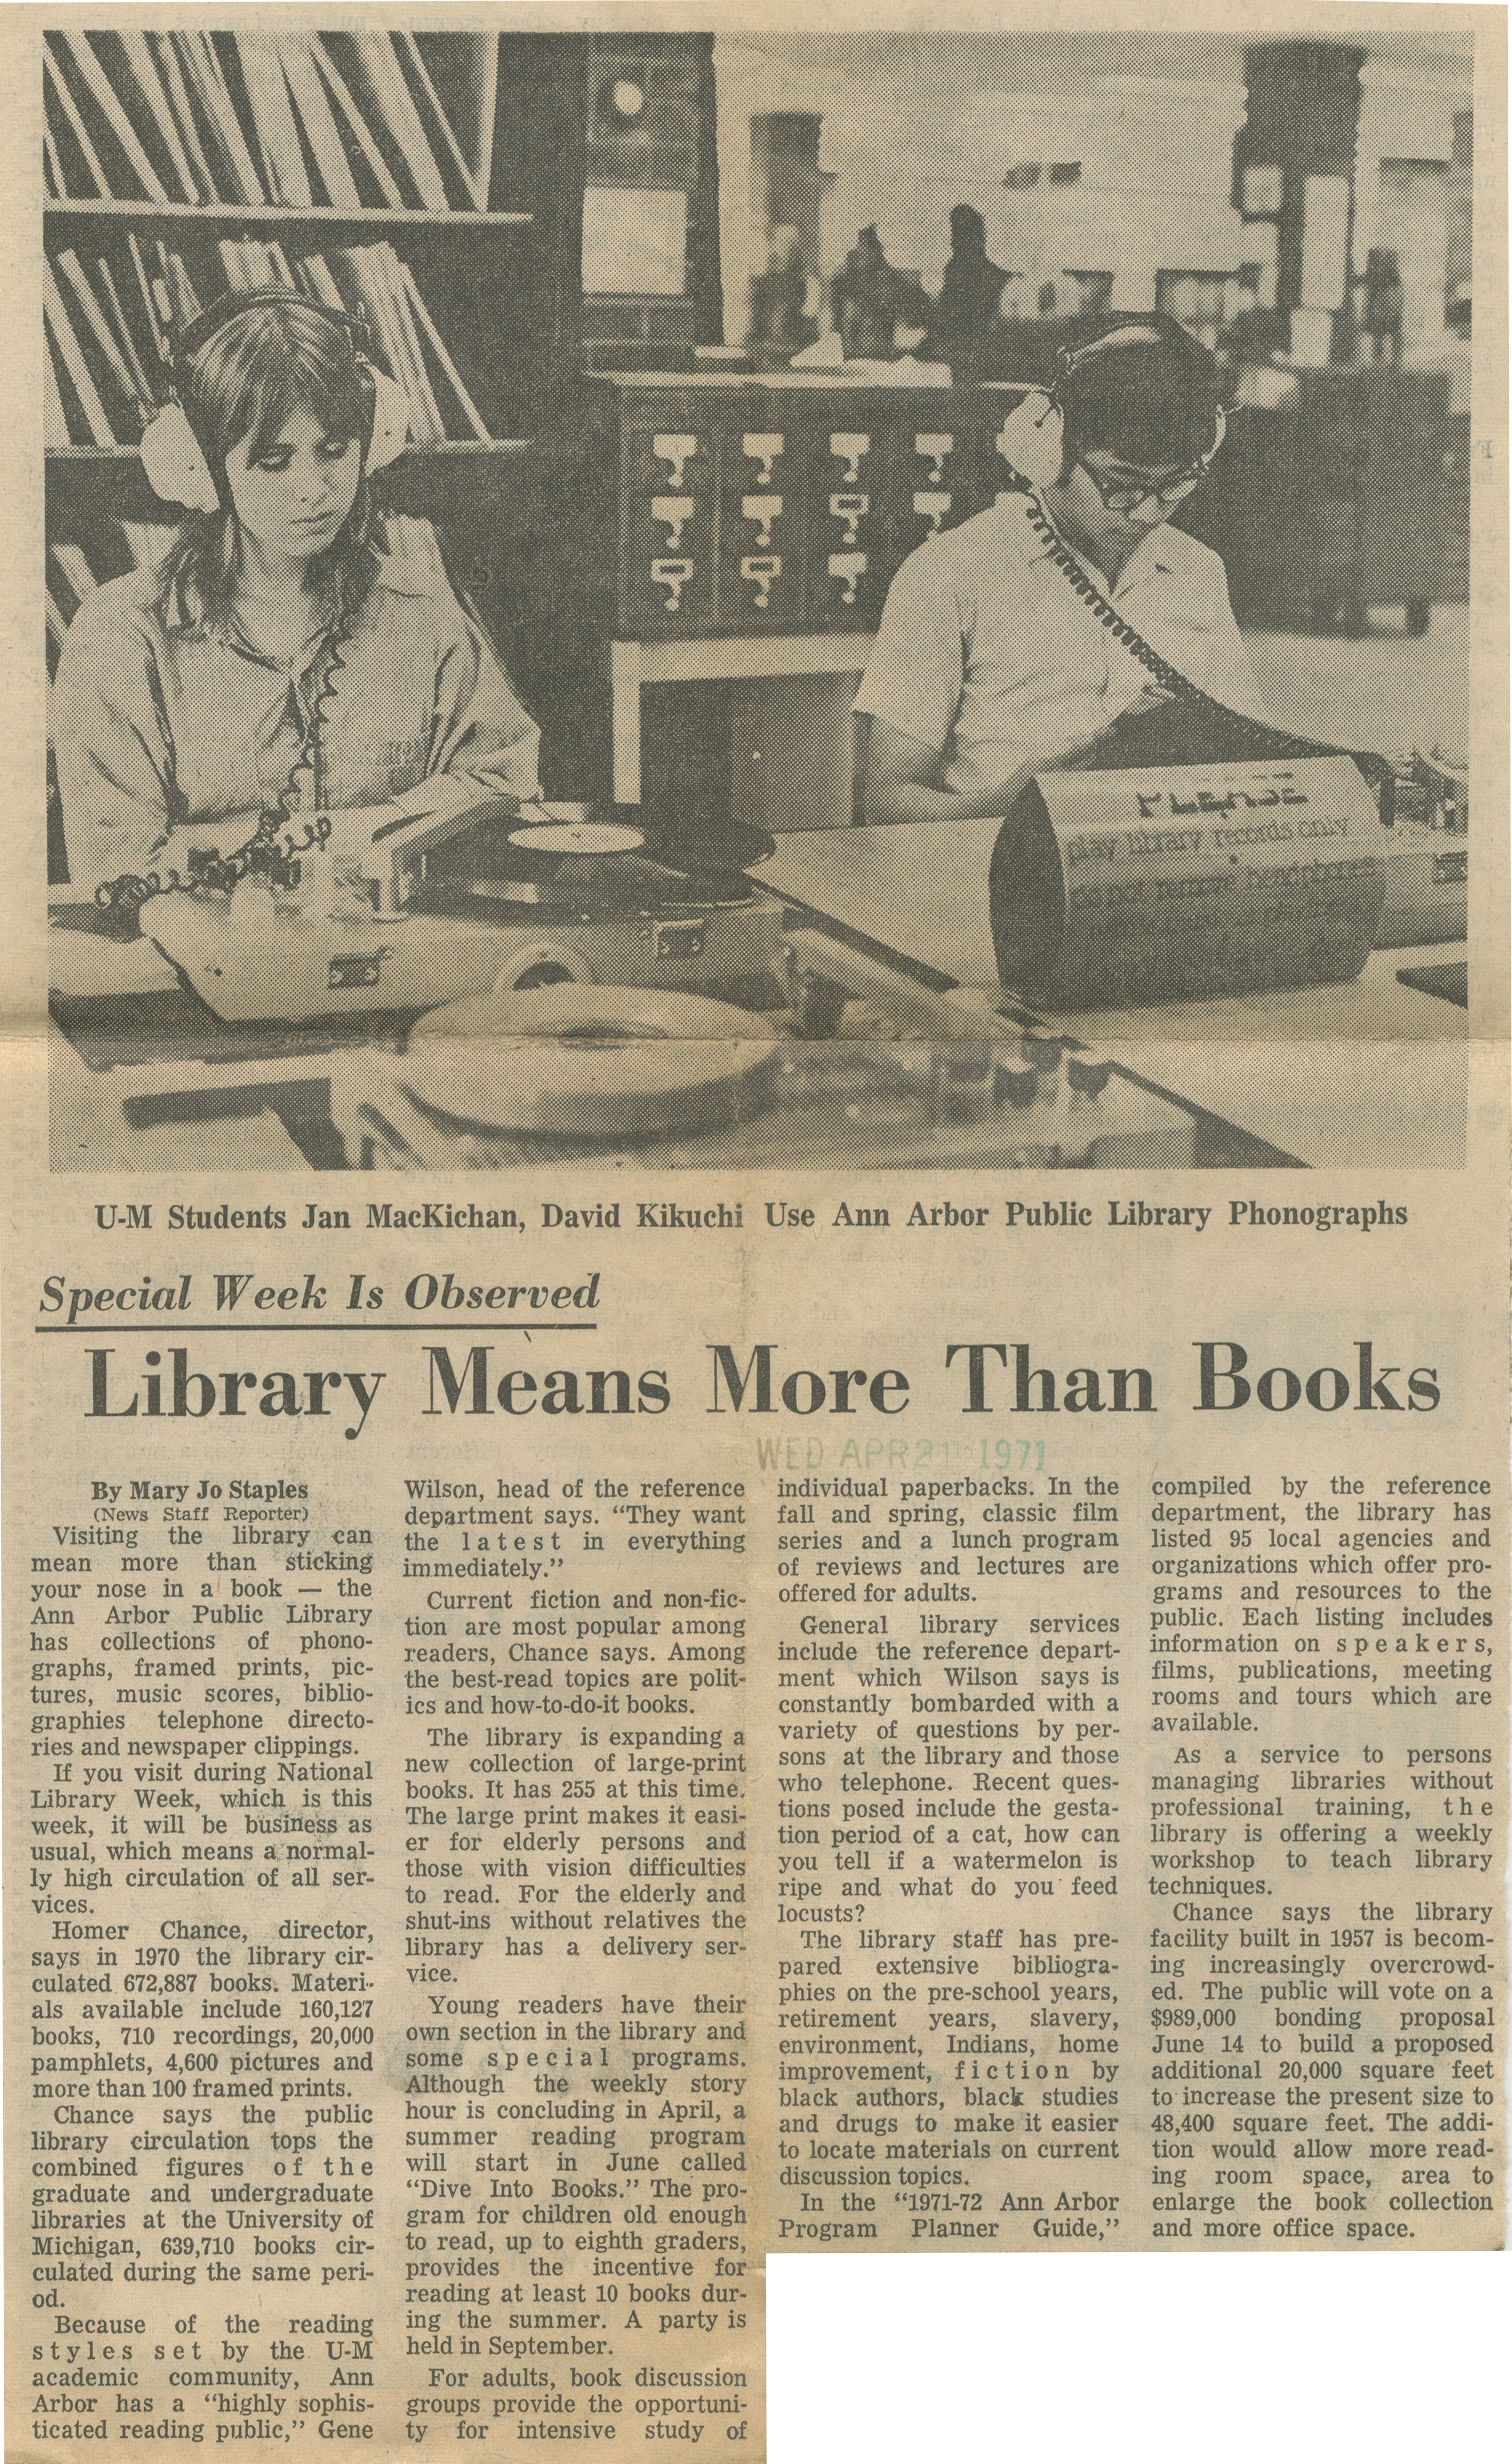 Library Means More Than Books - Special Week Is Observed image